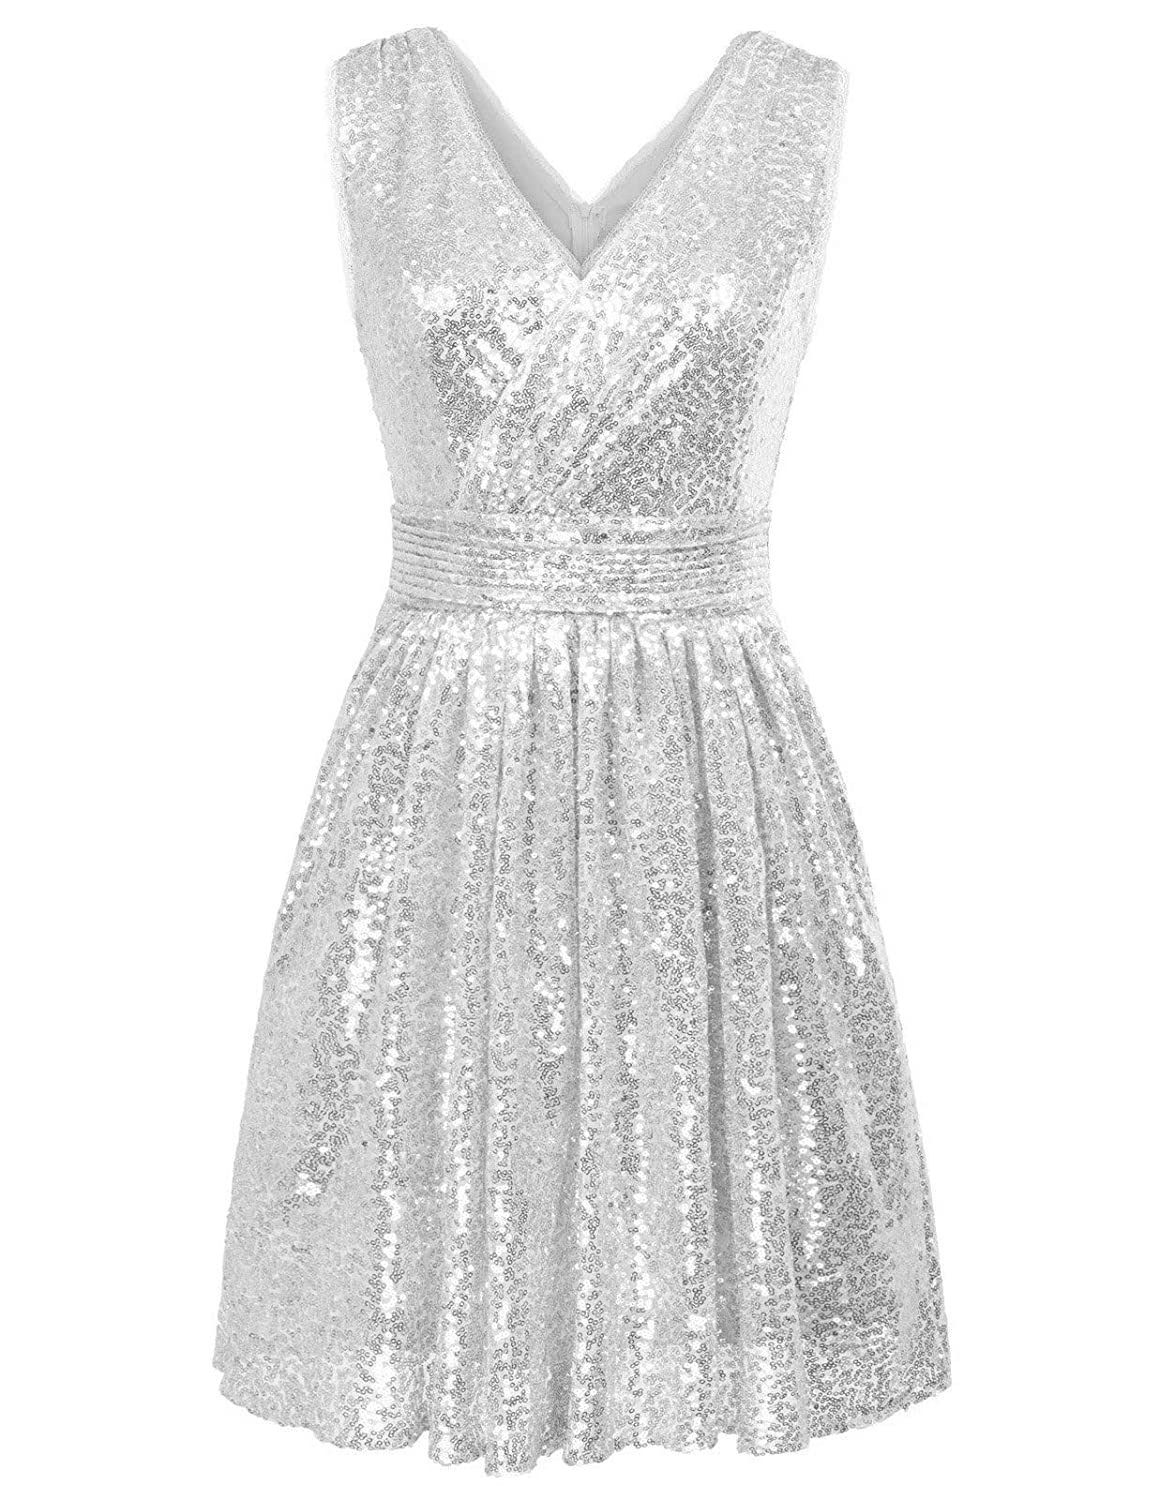 80s Dresses | Casual to Party Dresses Kate Kasin Women Sequin Bridesmaid Dress Sleeveless Maxi Evening Prom Dresses $59.99 AT vintagedancer.com